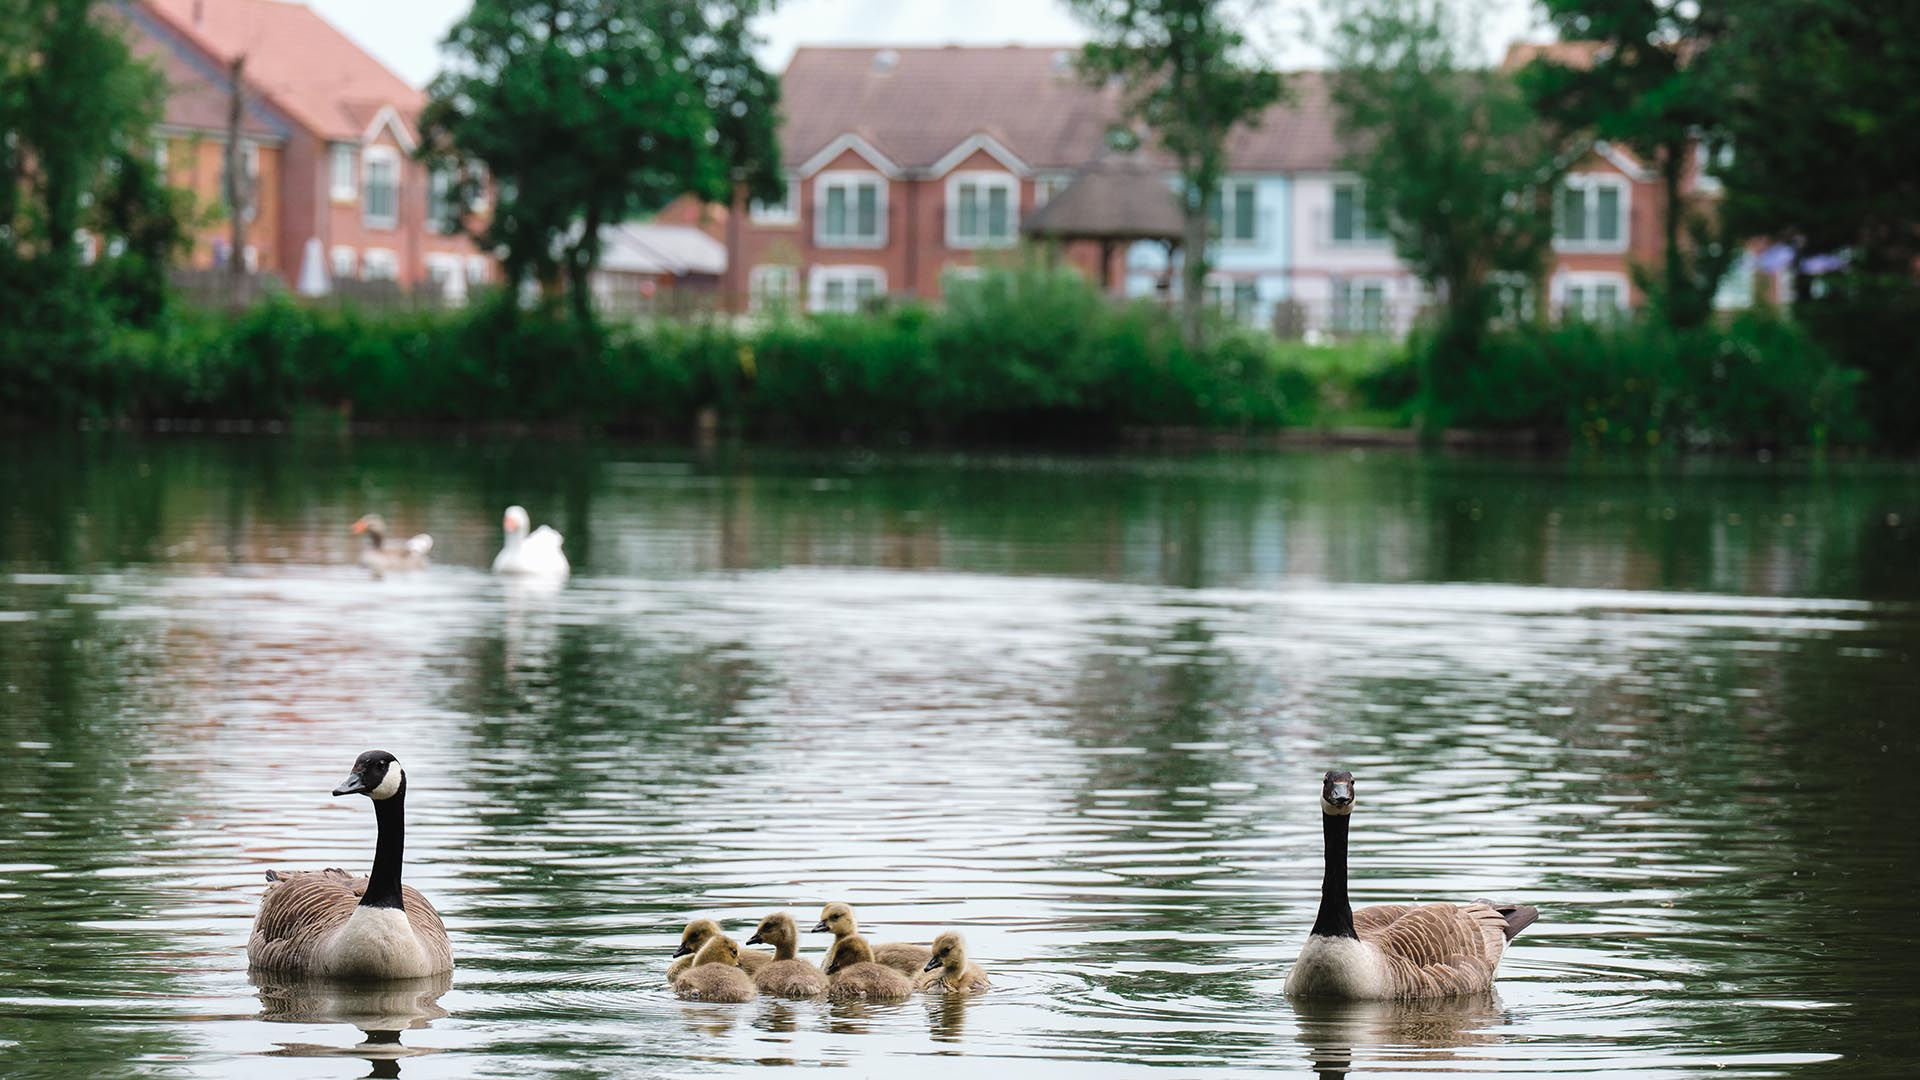 lakeview-holiday-cottages-geese-family-fishing-lakes-somerset